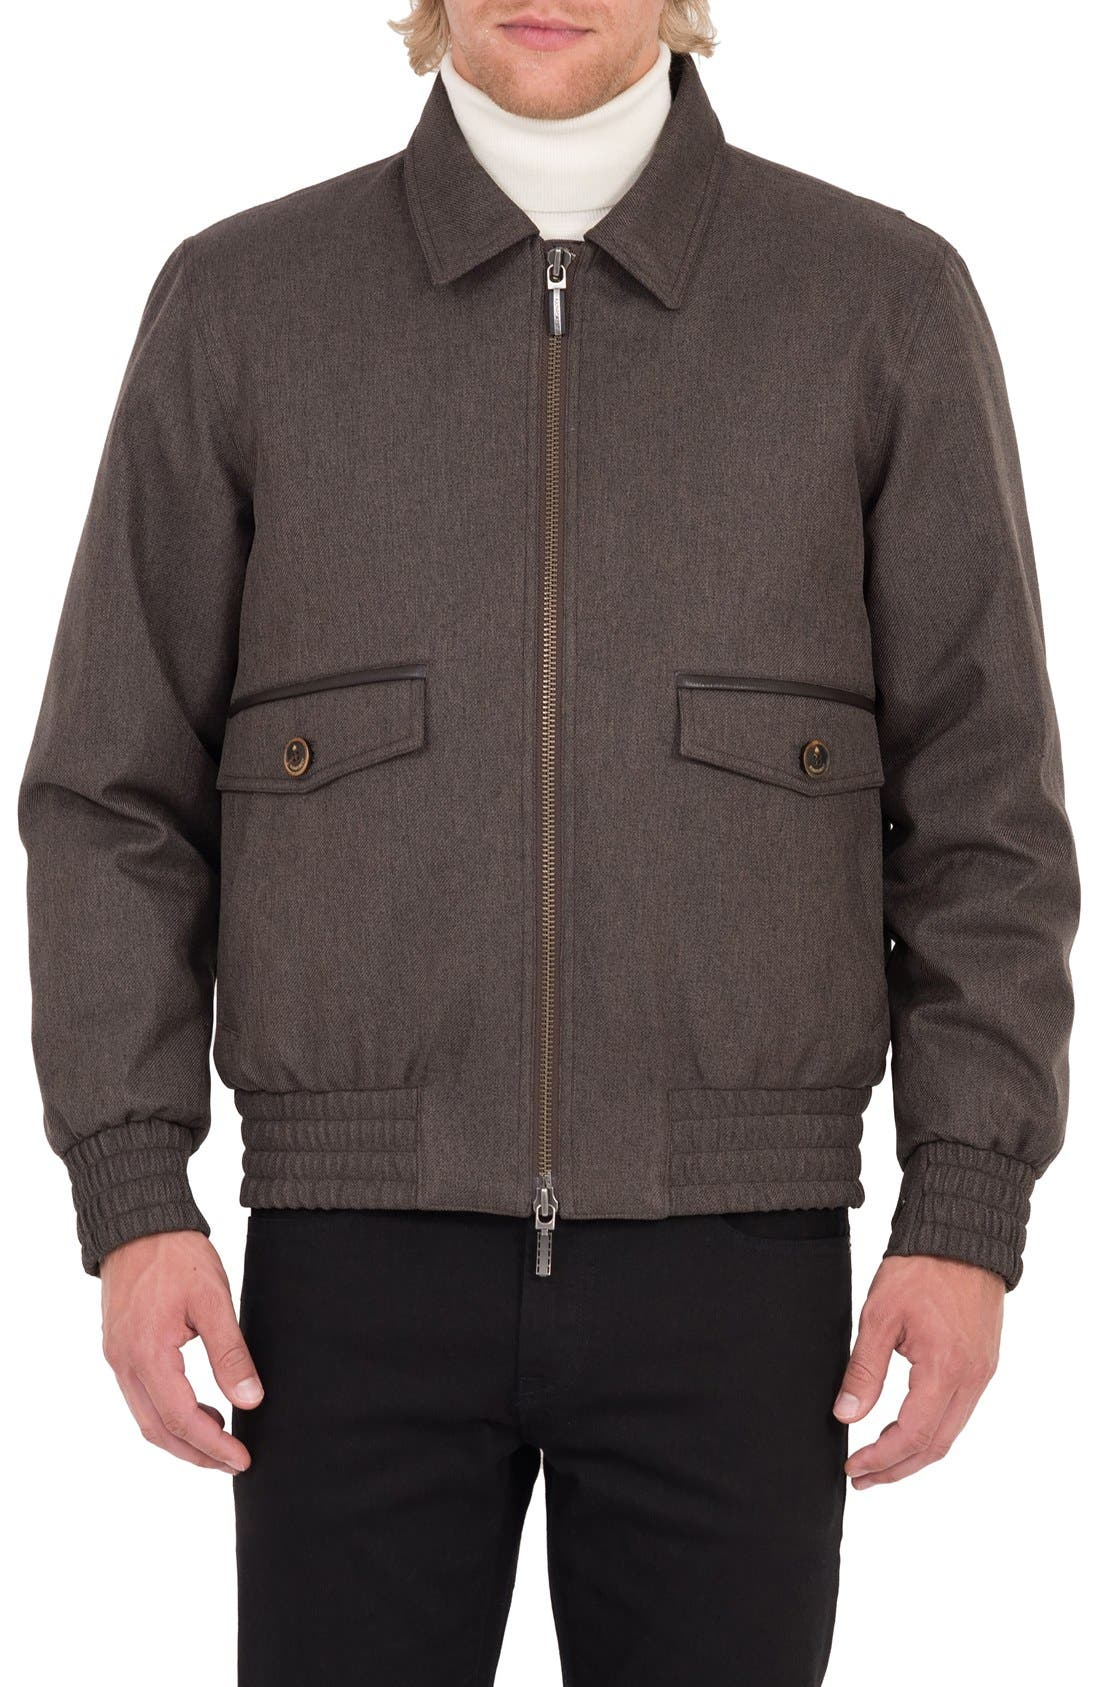 Main Image - Rainforest Wainwright Waterproof Twill Bomber Jacket